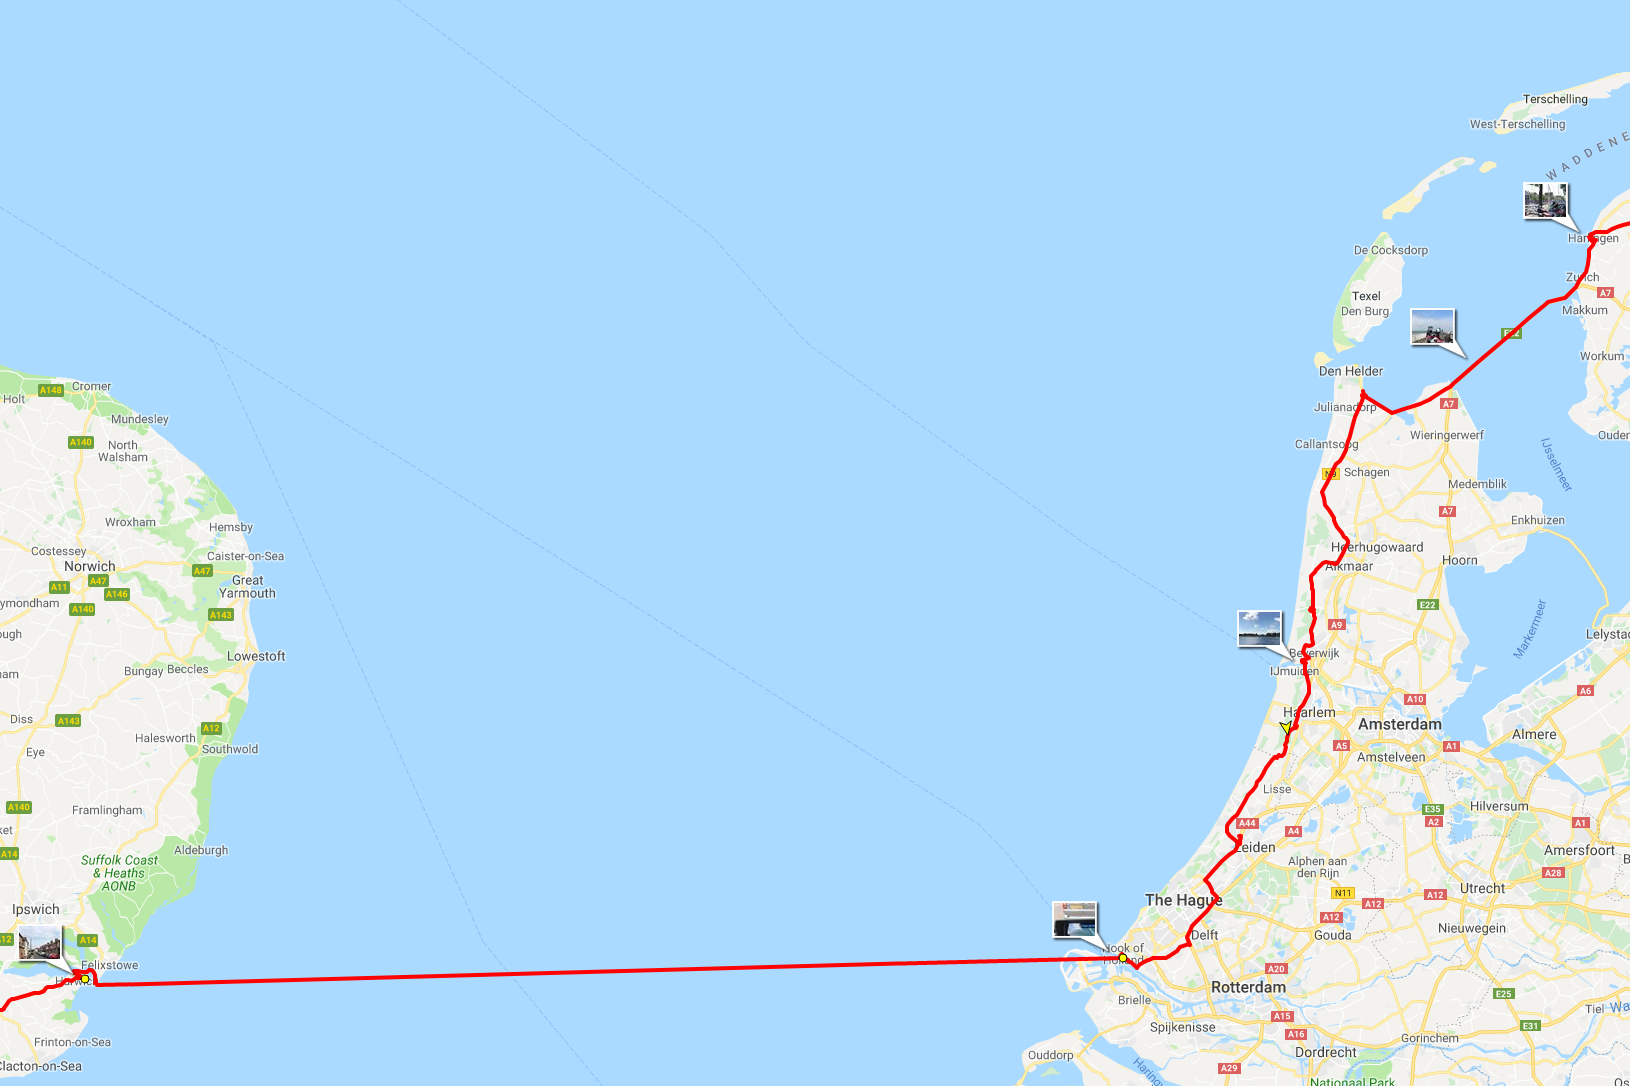 Channel crossing and Netherlands